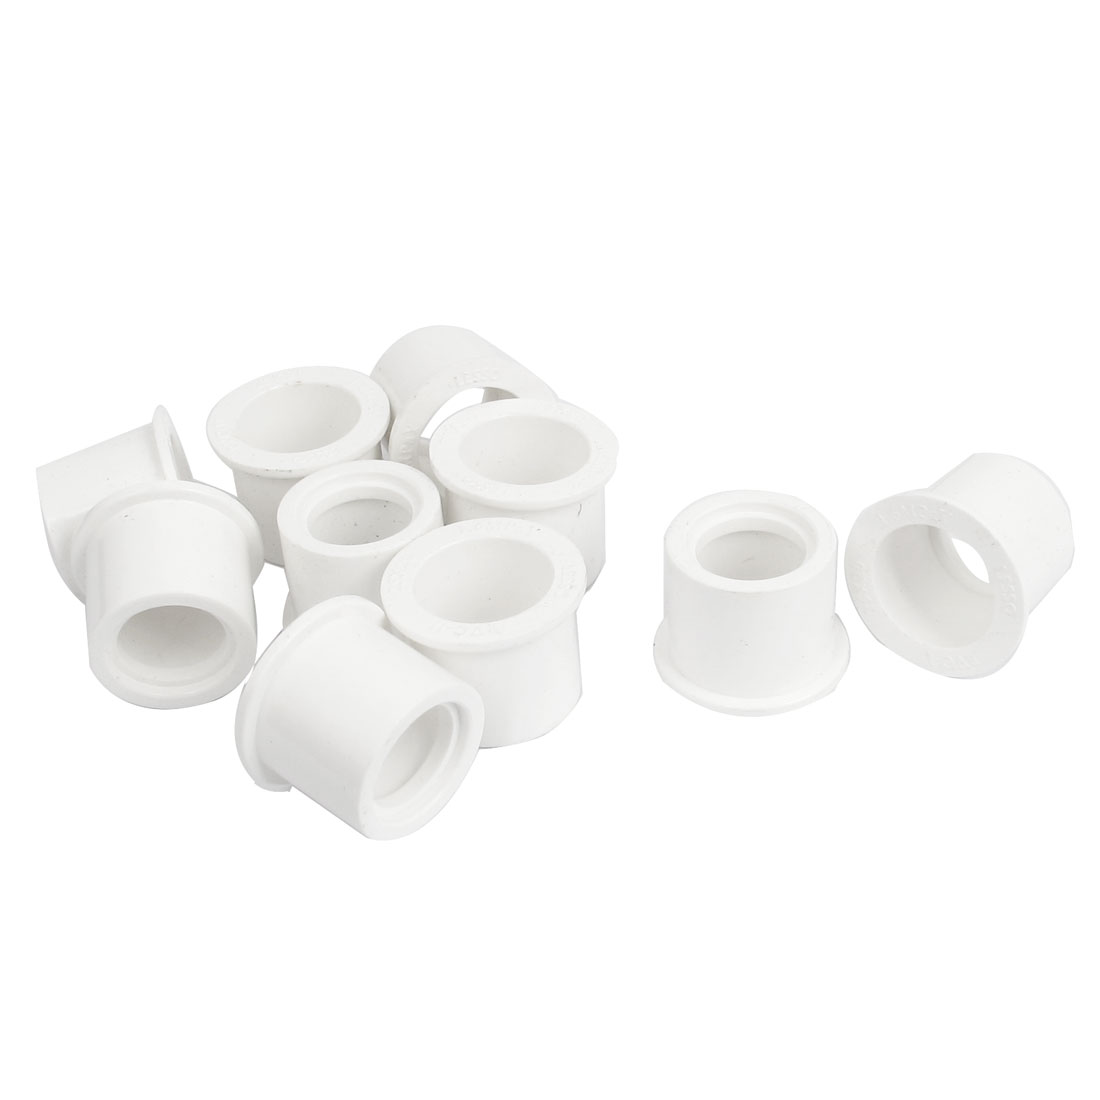 20mm Inner Dia to 25mm OD PVC-U Water Supply Pipe Tube Adapter Connector Fitting White 10pcs